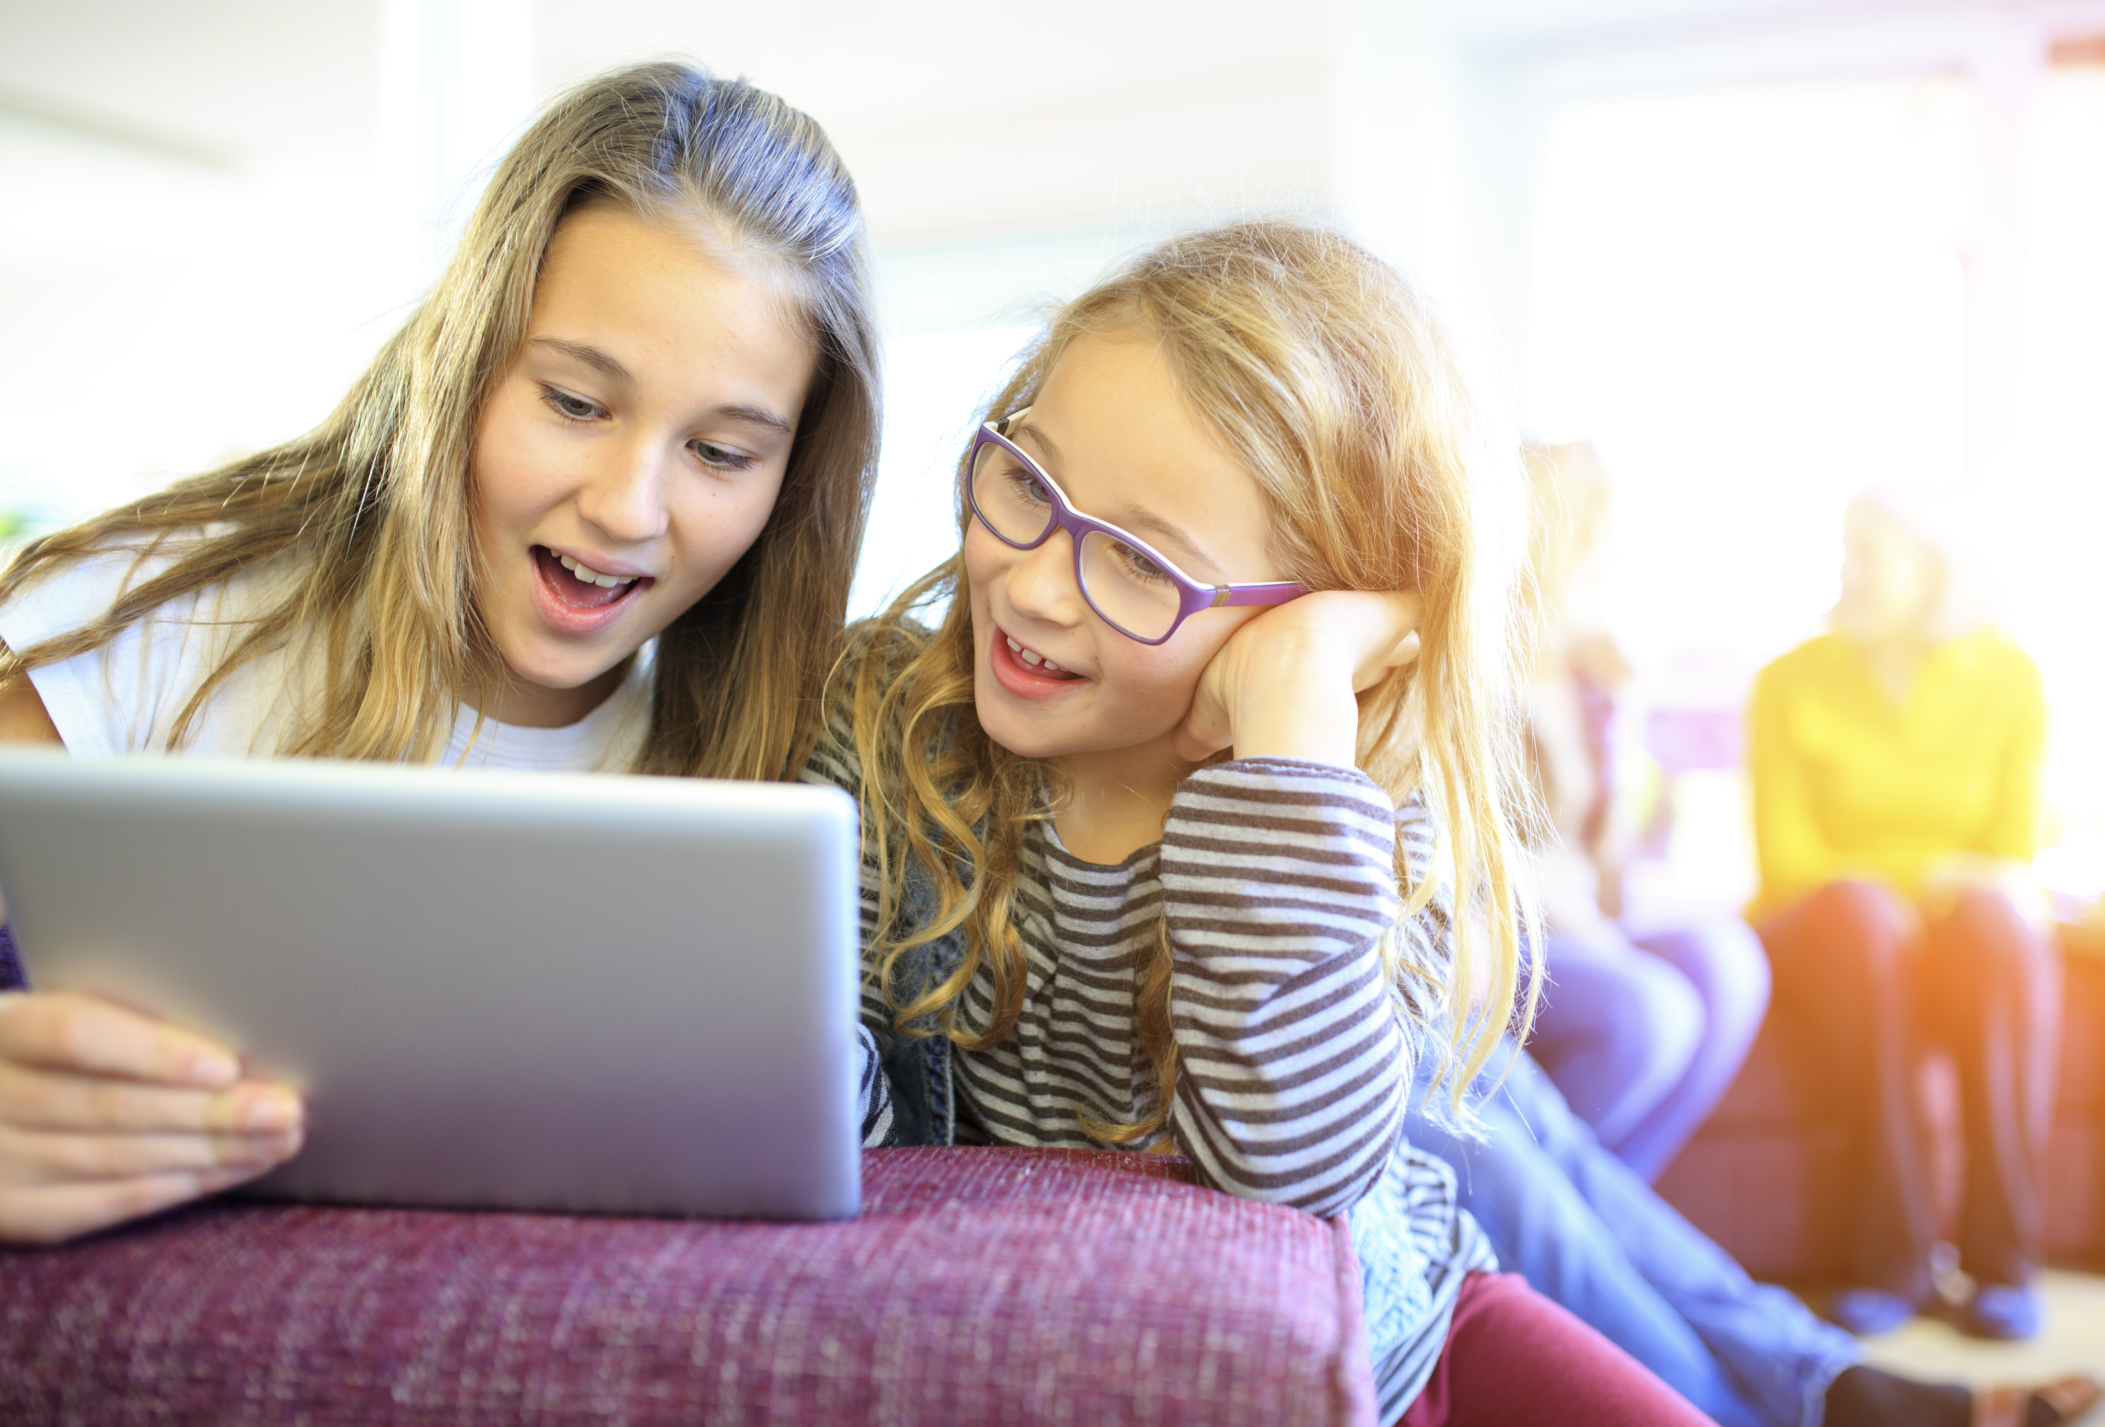 Parenting: How do you teach proper digital behavior?